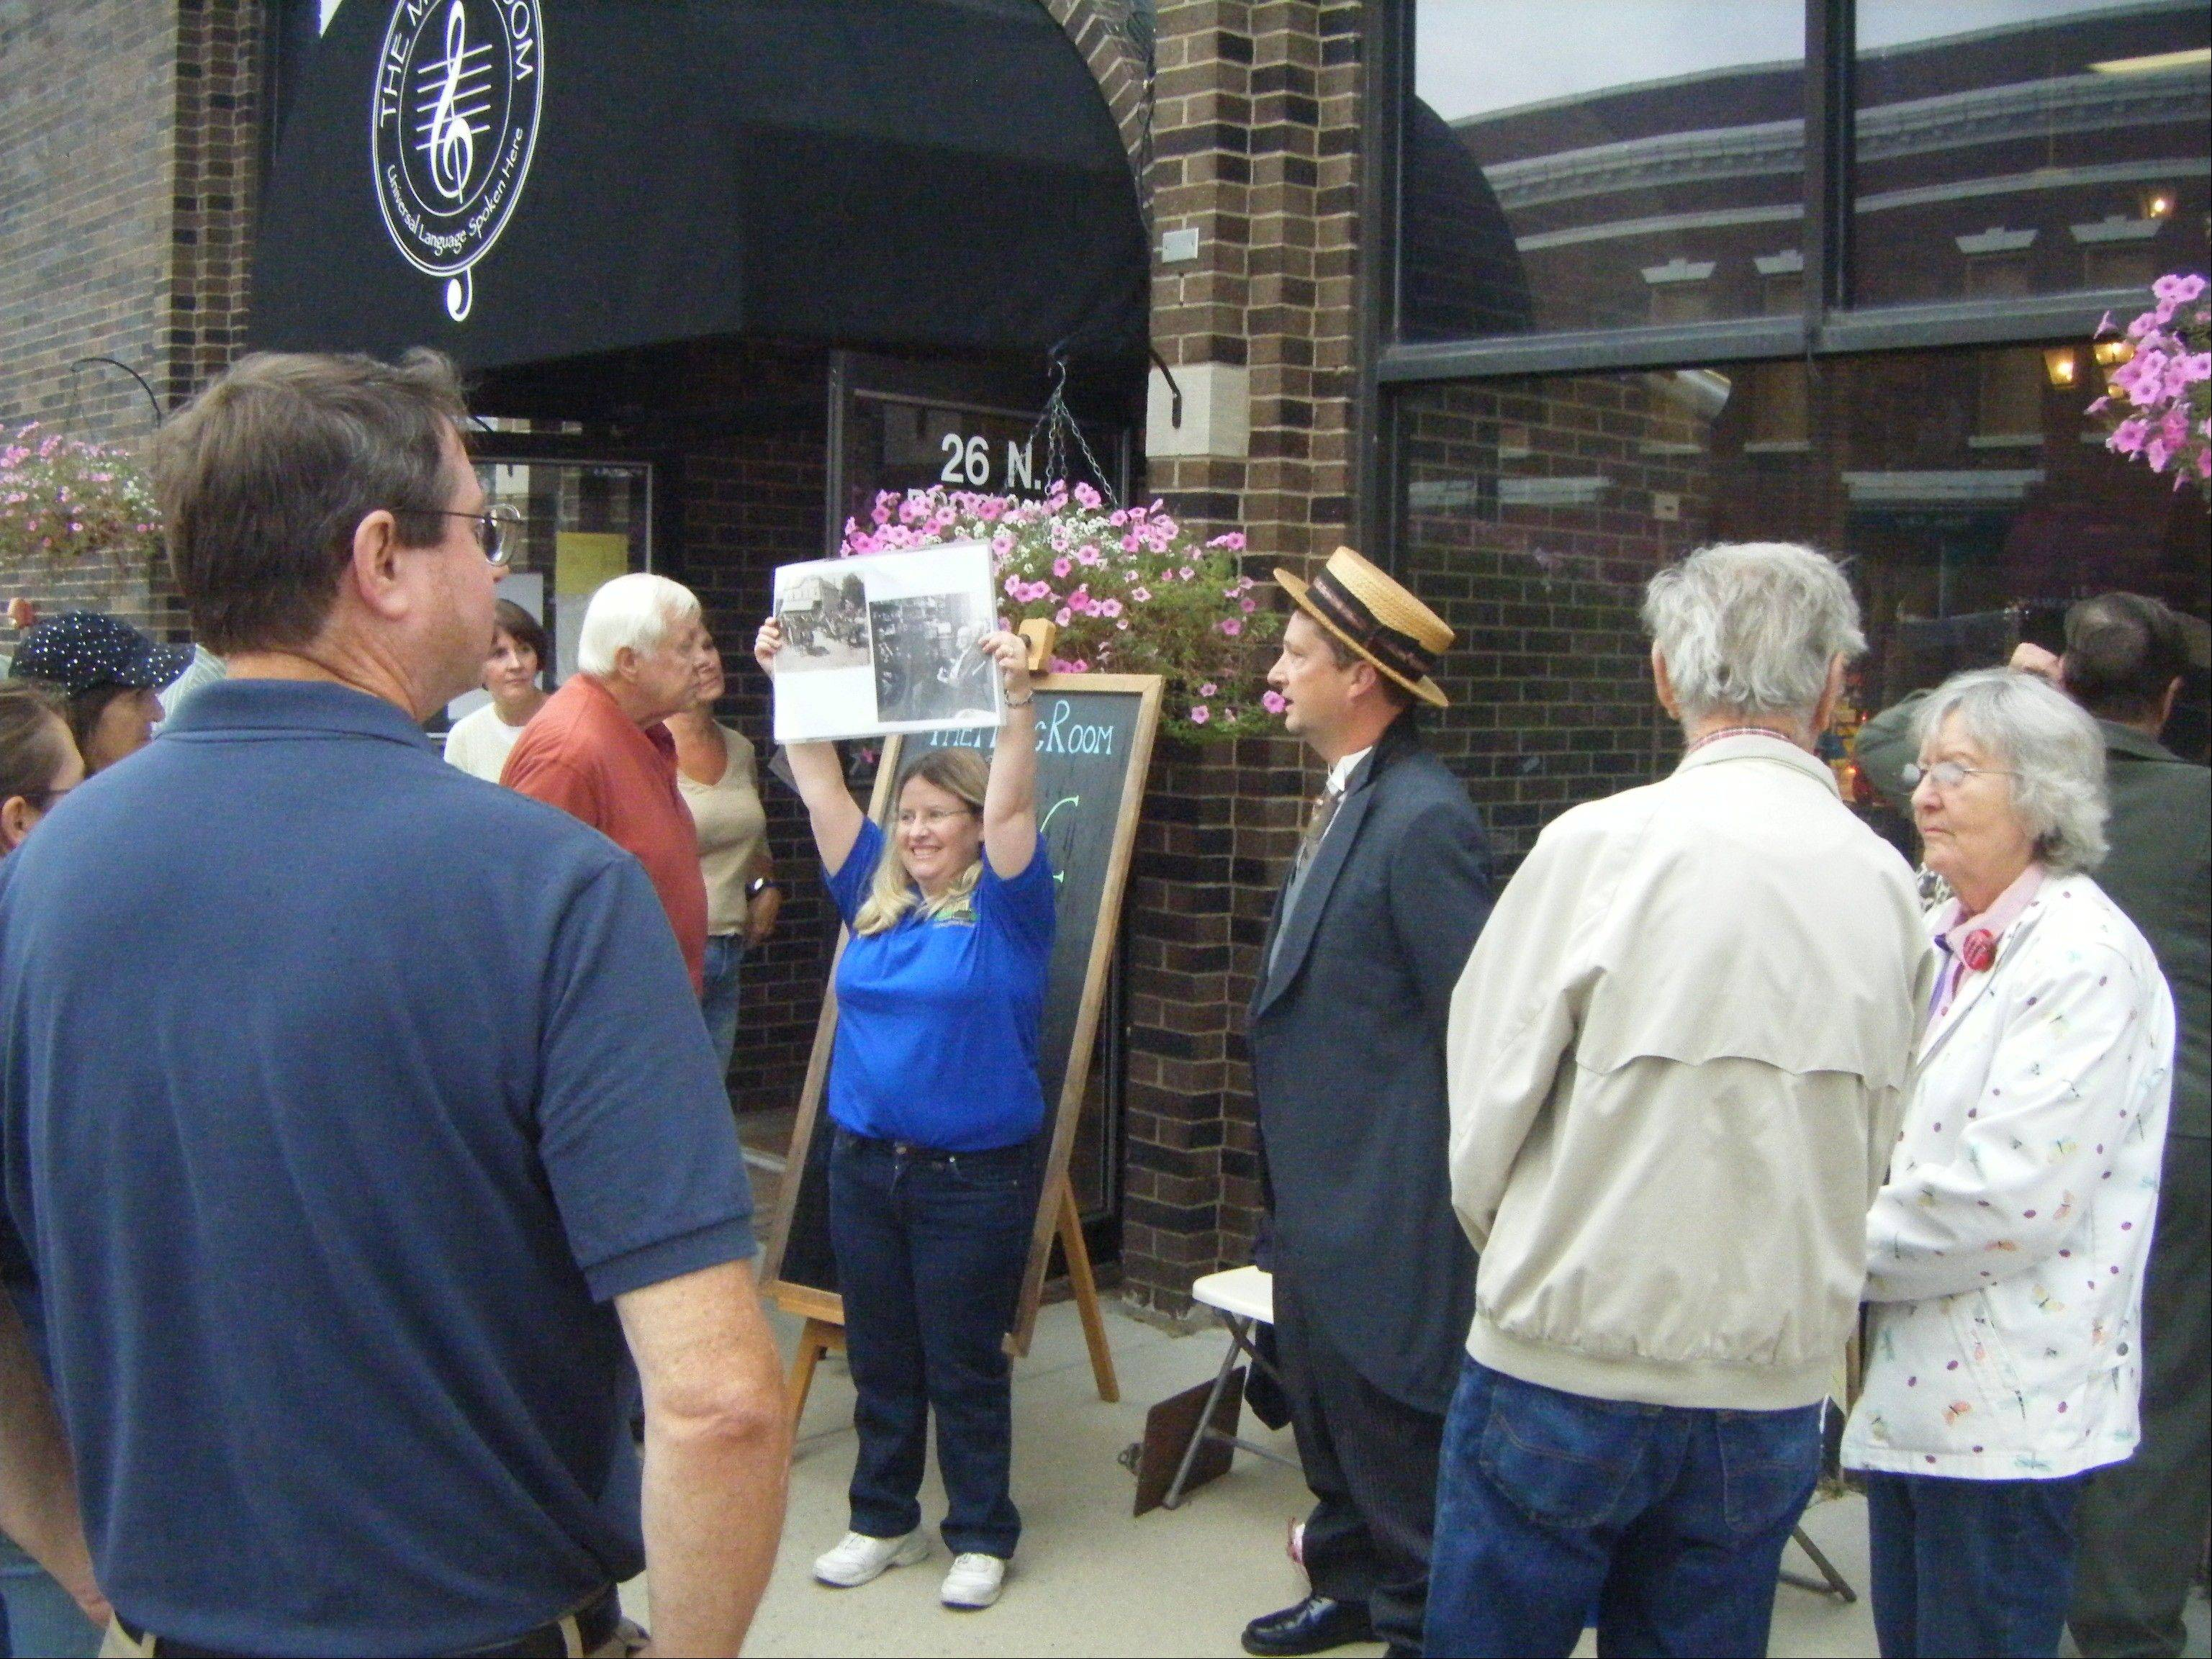 Visit seven places of historical significance in downtown Palatine and listen to stories told by docents, who will share the history of each location, at the Palatine Historical Society's second annual History Crawl Friday, Sept. 7.